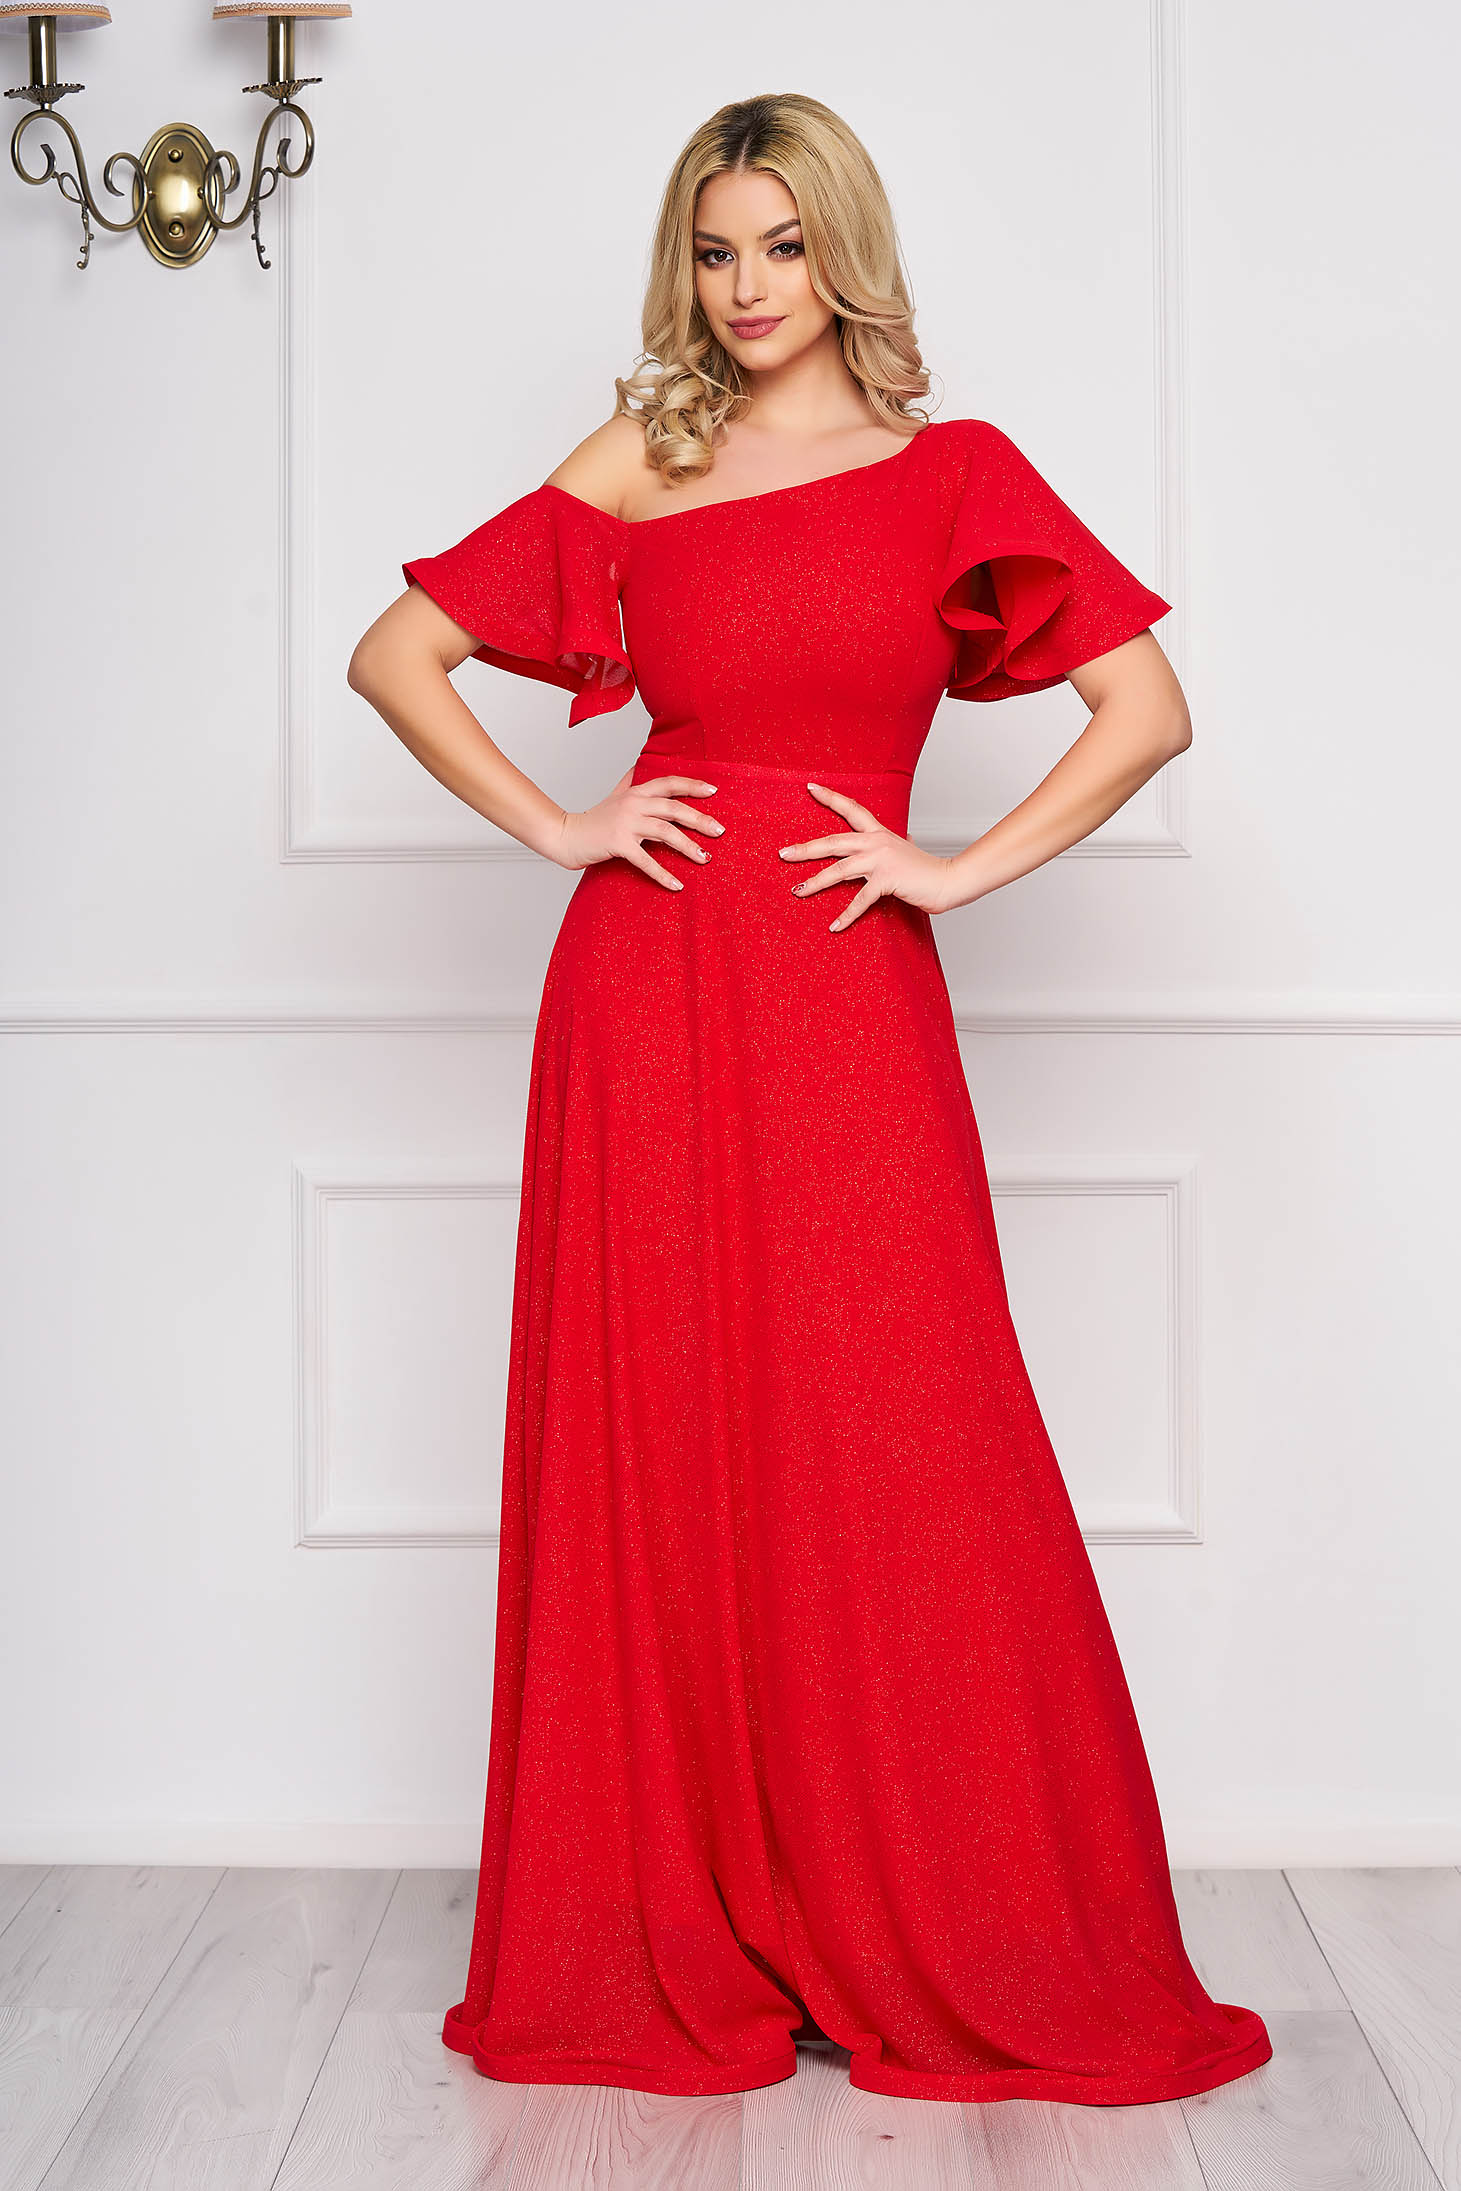 Dress StarShinerS red long occasional cloche from veil fabric one shoulder